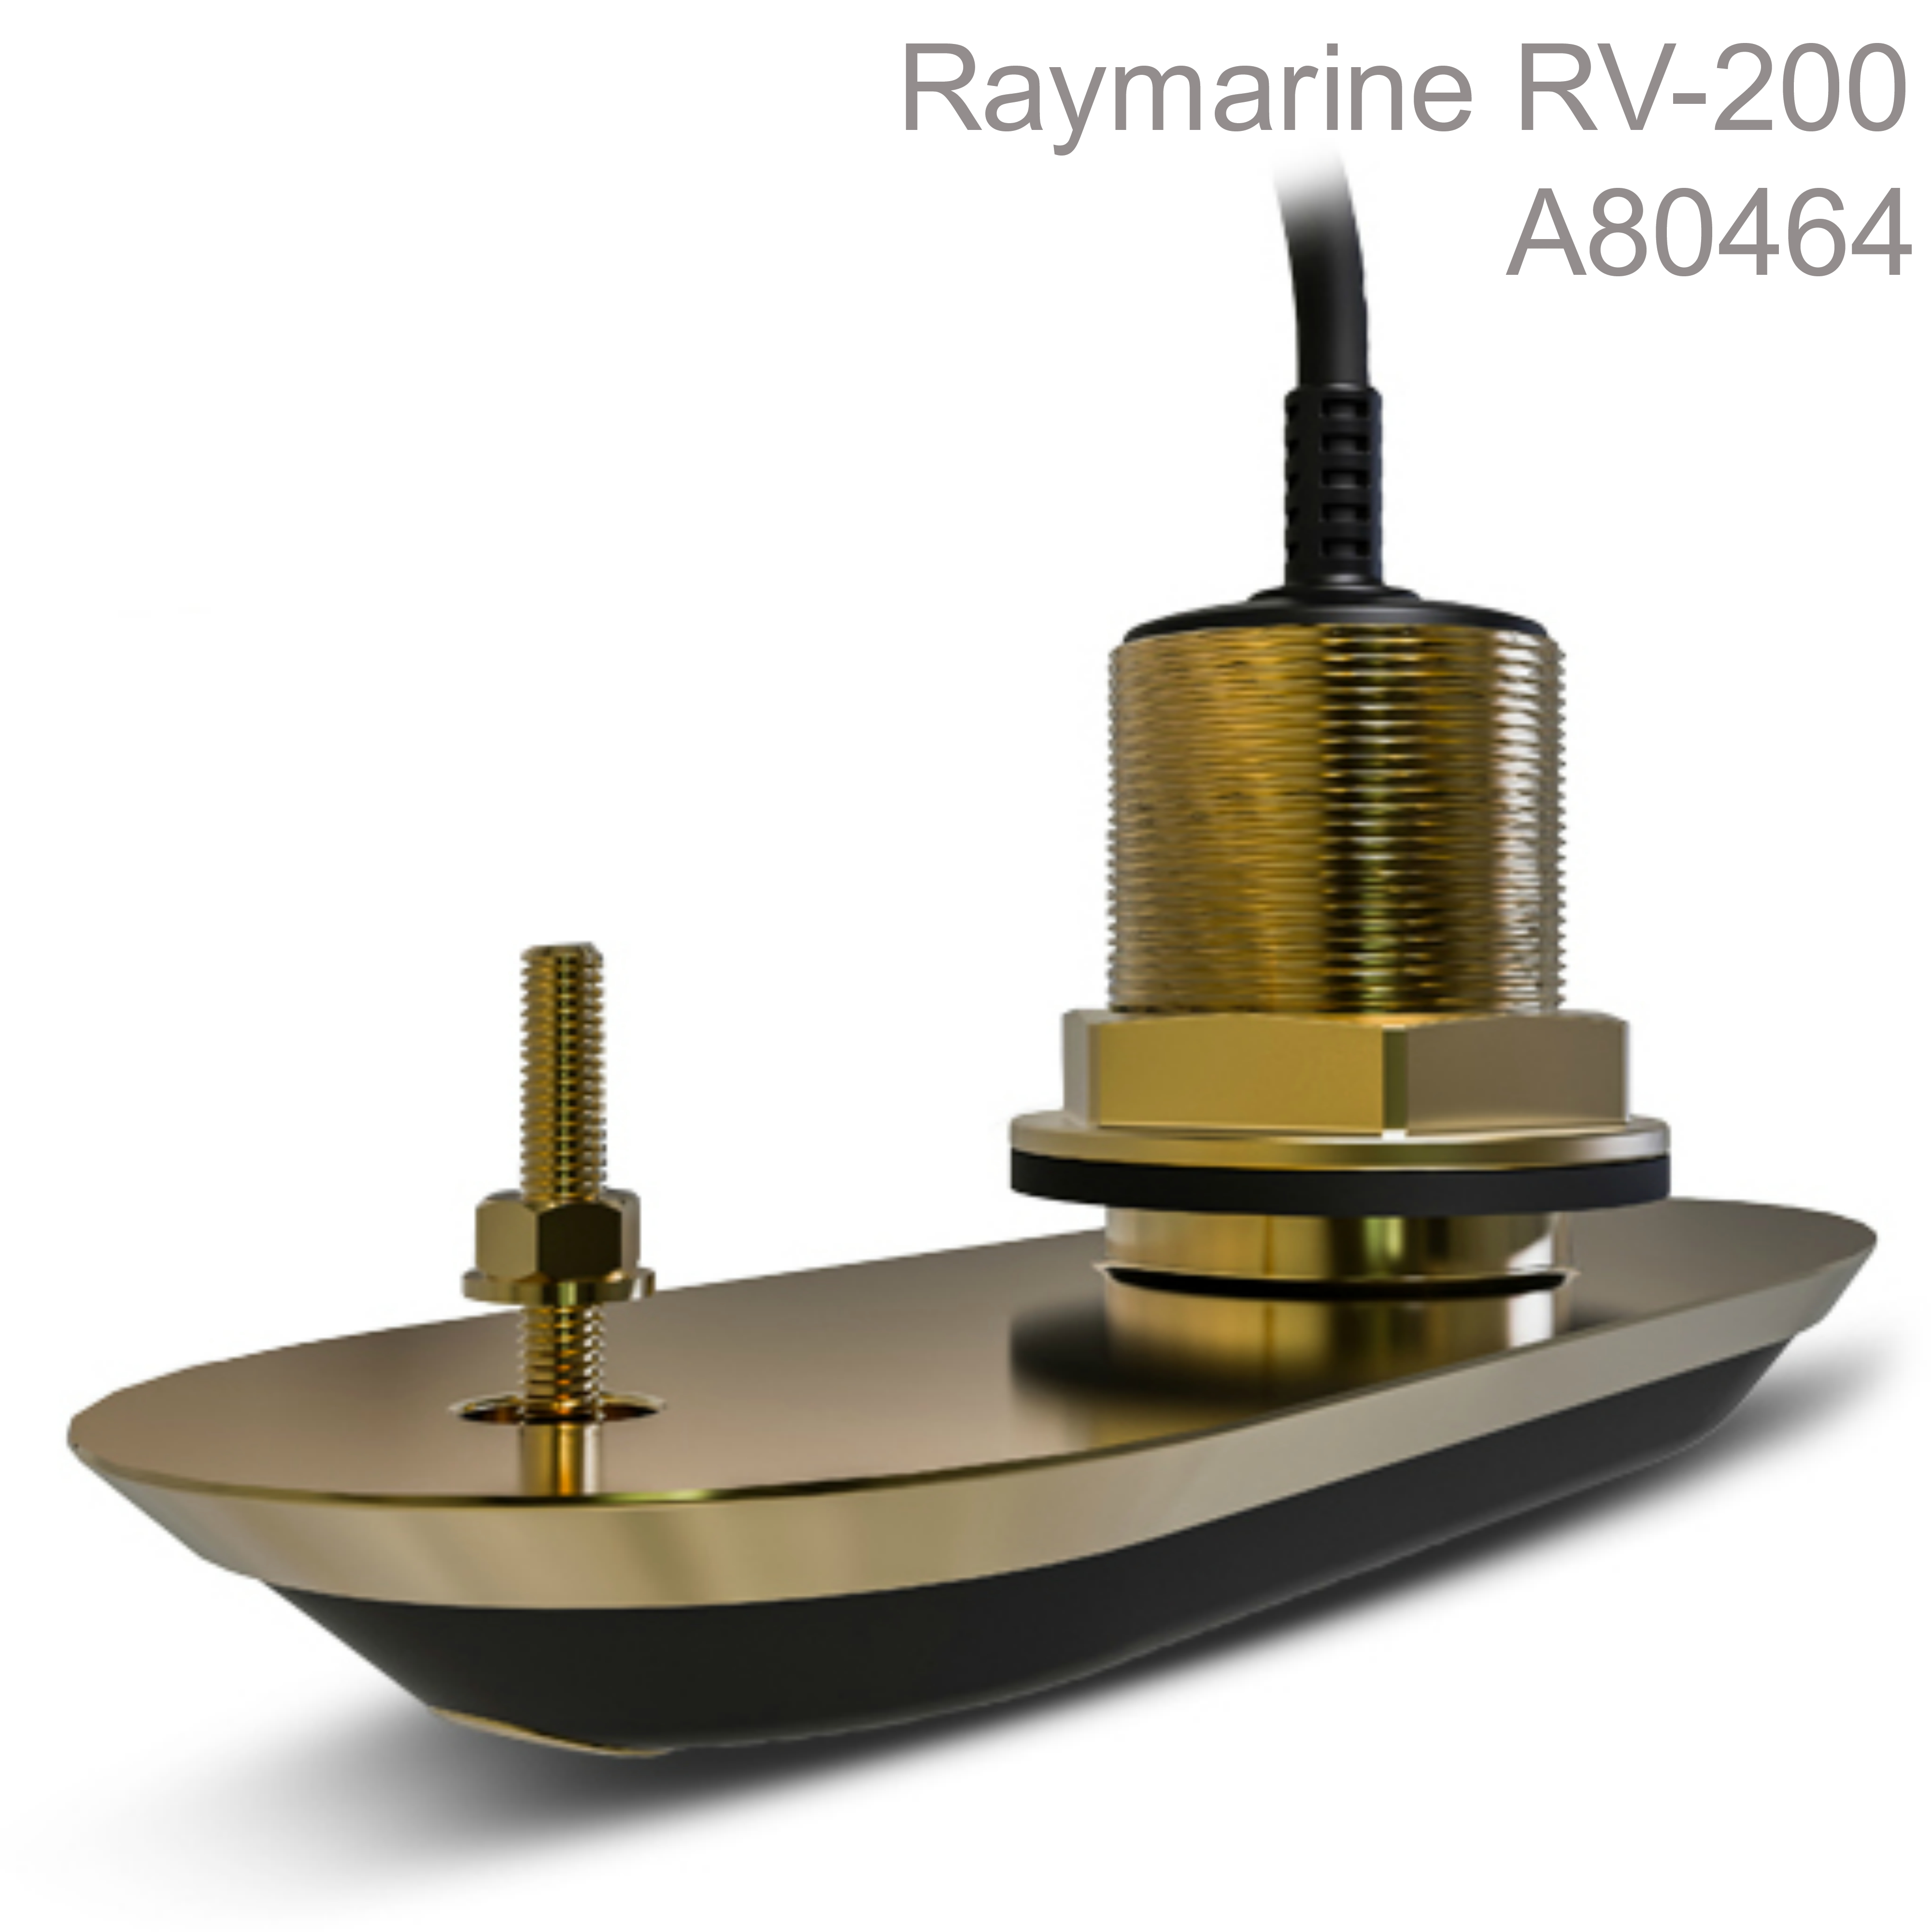 Raymarine RV-200 RealVision 3D Bronze Thru-Hull Transducer-0°|8m Cable|For Axiom MFD